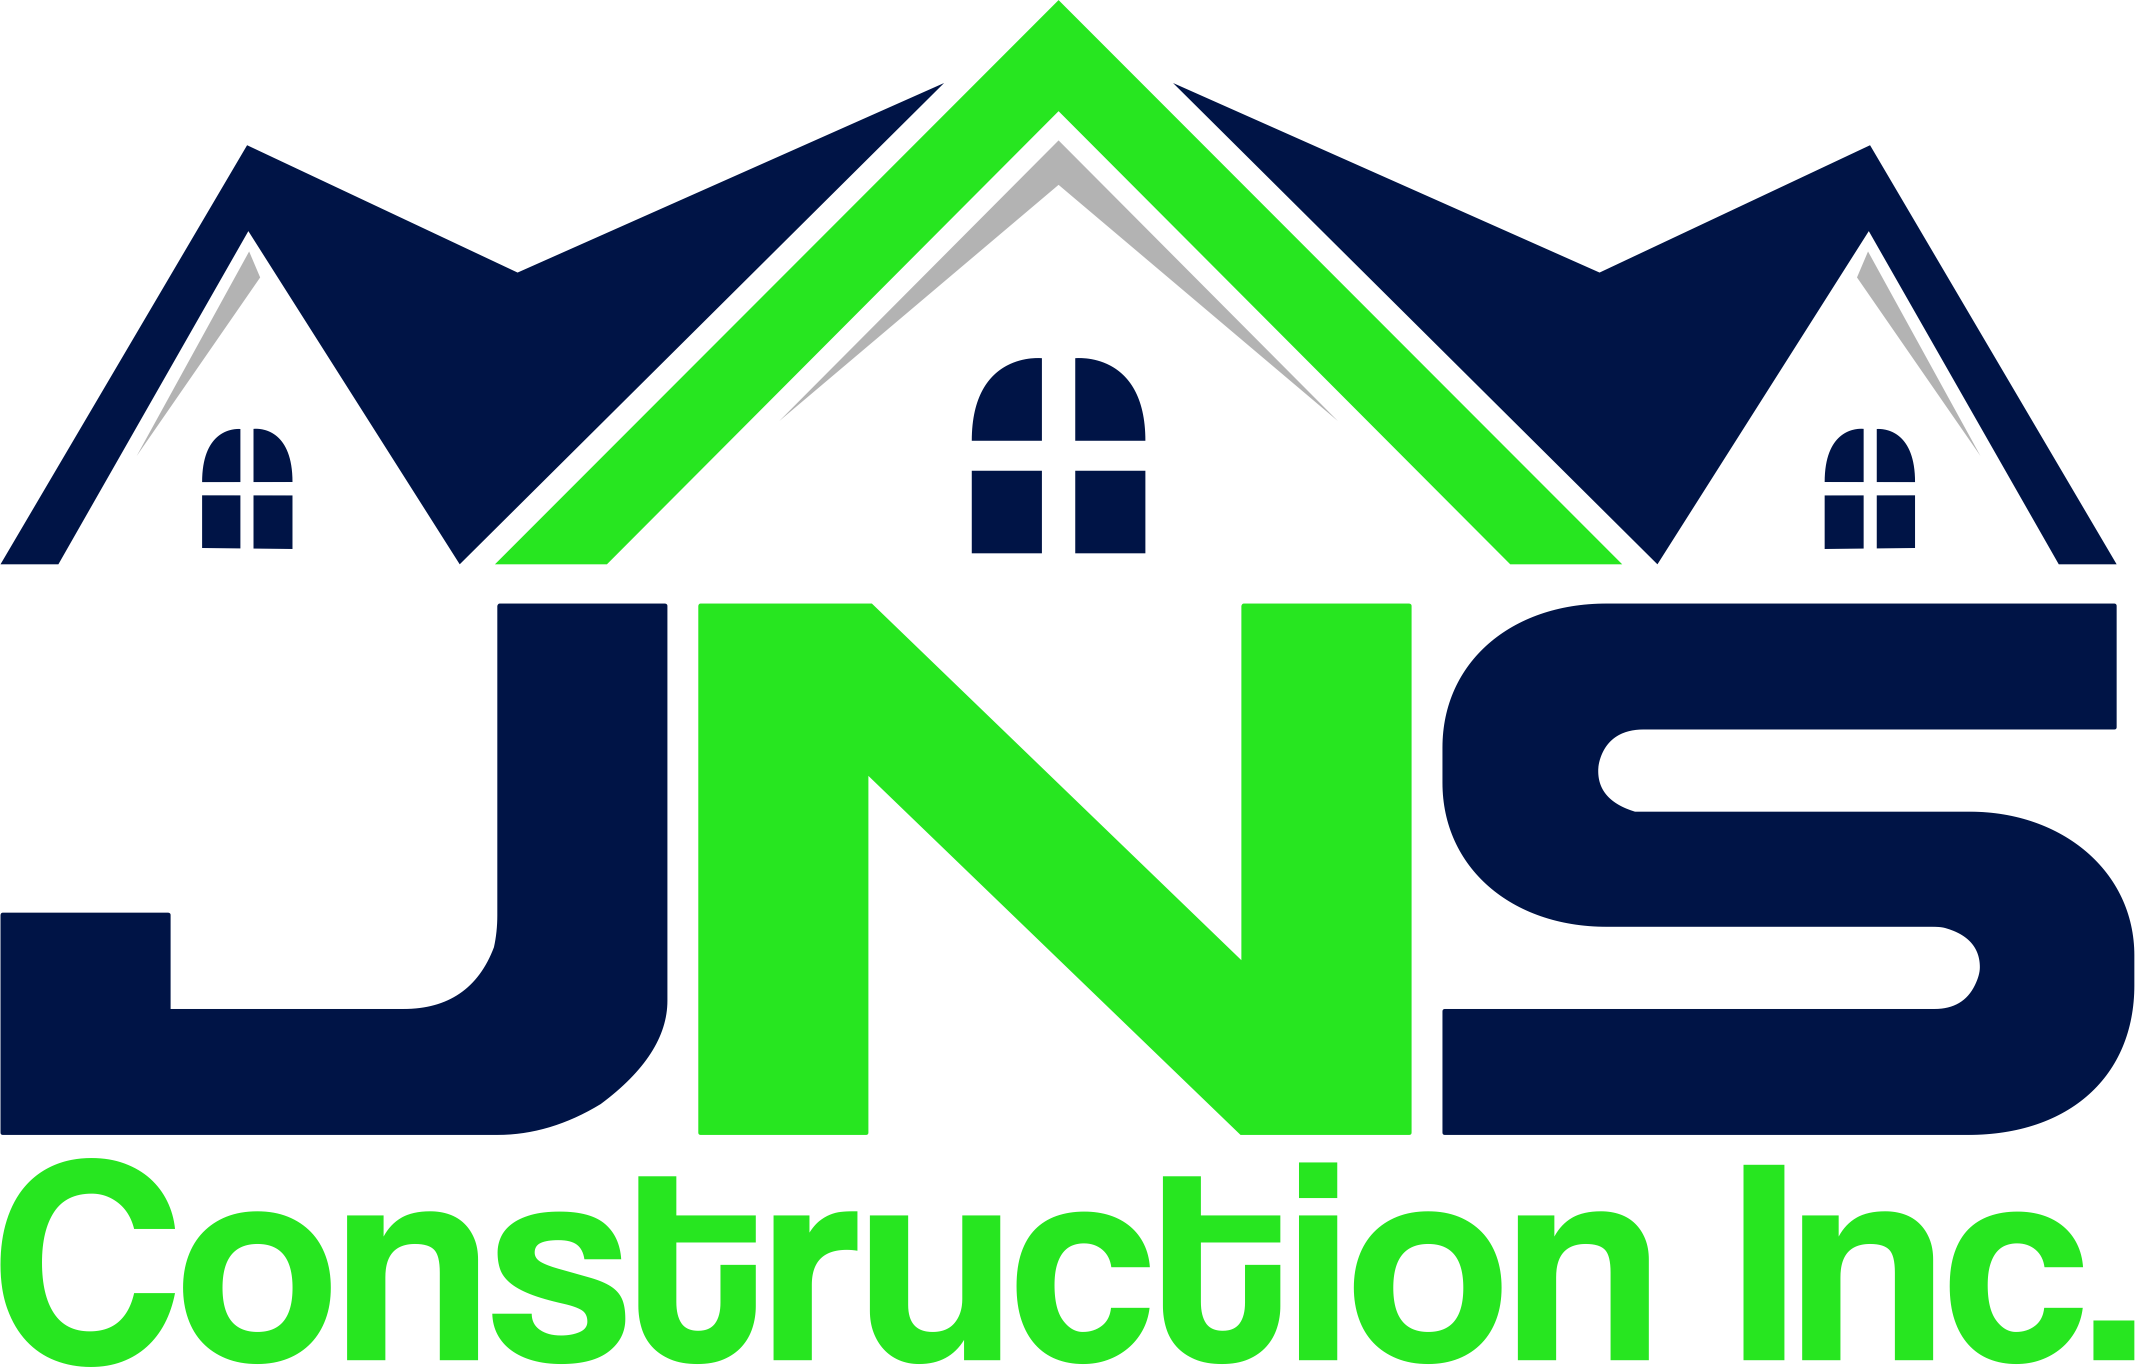 Jns Roofing And Construction Can Be A Professional Roofing Company That May Service All Of Your Roofing Nee Roofing Logo Roofing Services Roofing Company Logos